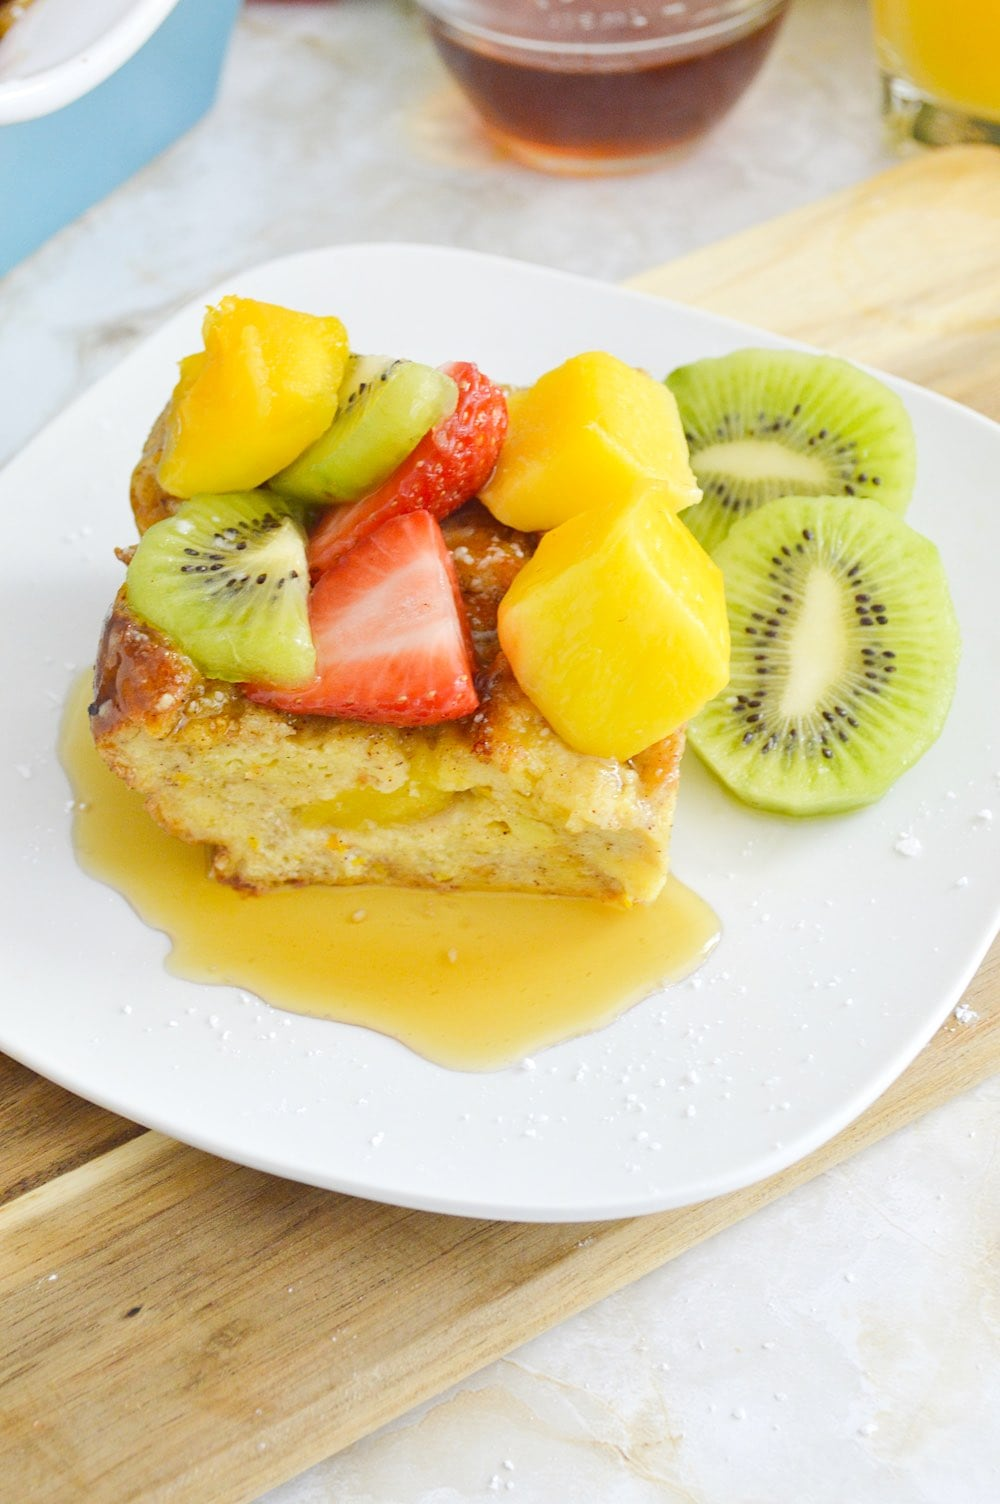 Mango stuffed French Toast with maple syrup.